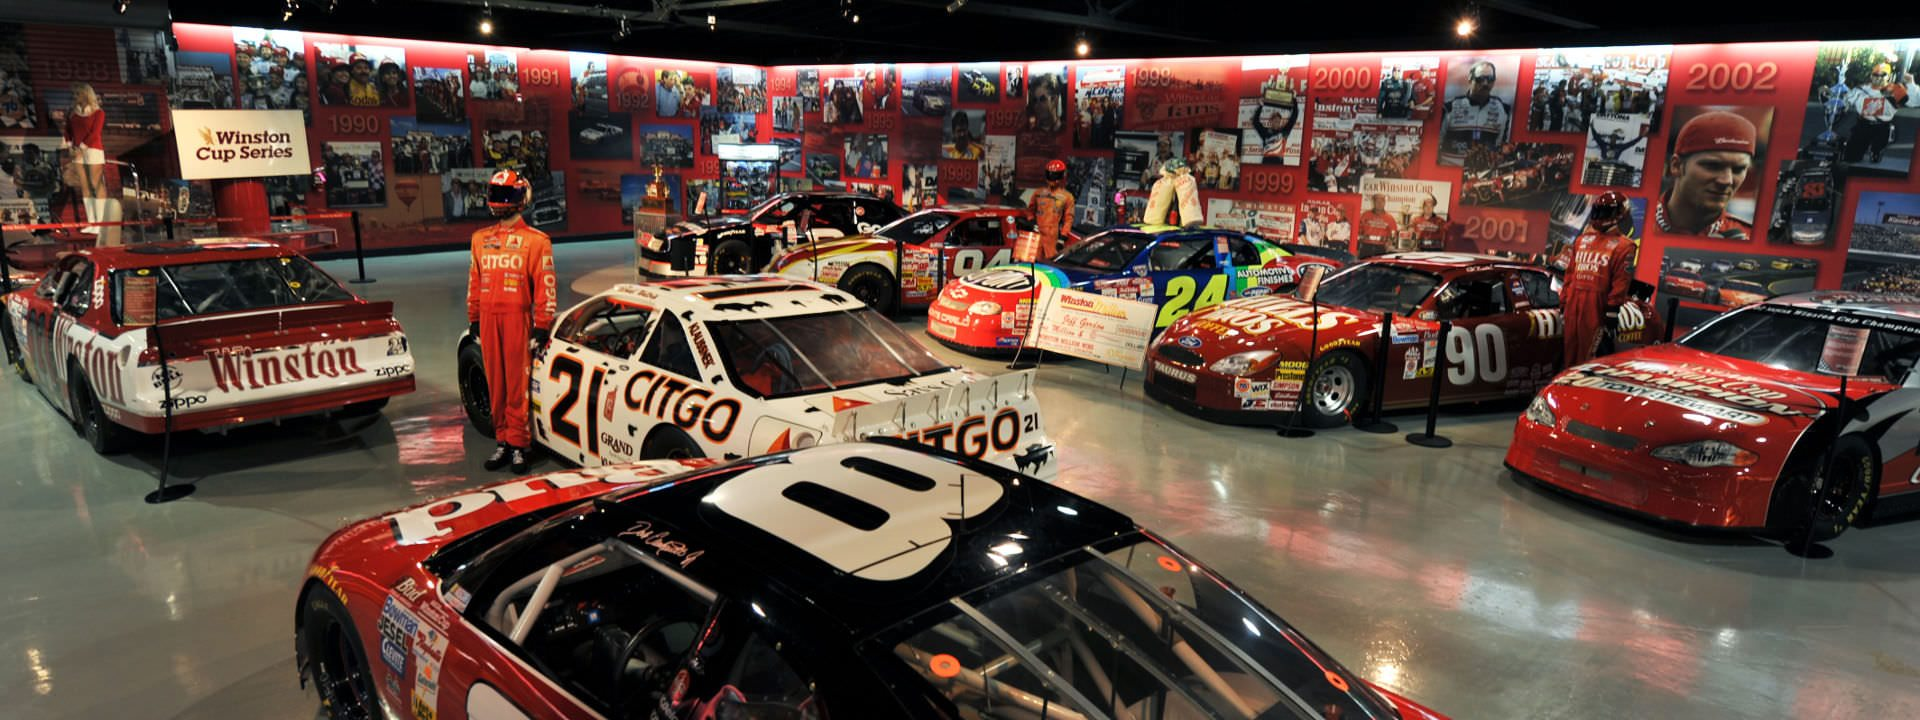 About The Museum Winston Cup Museum